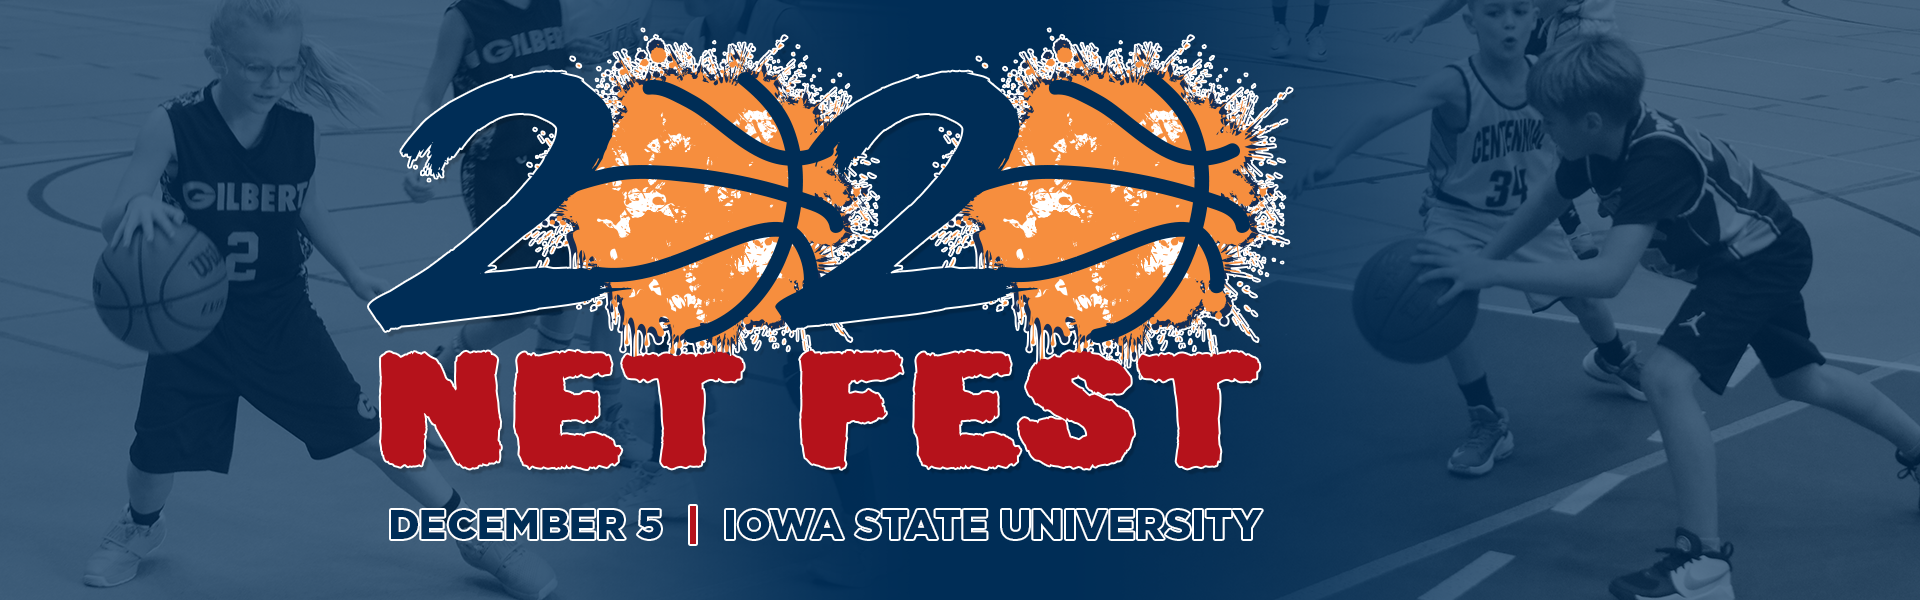 Net Fest Basketball